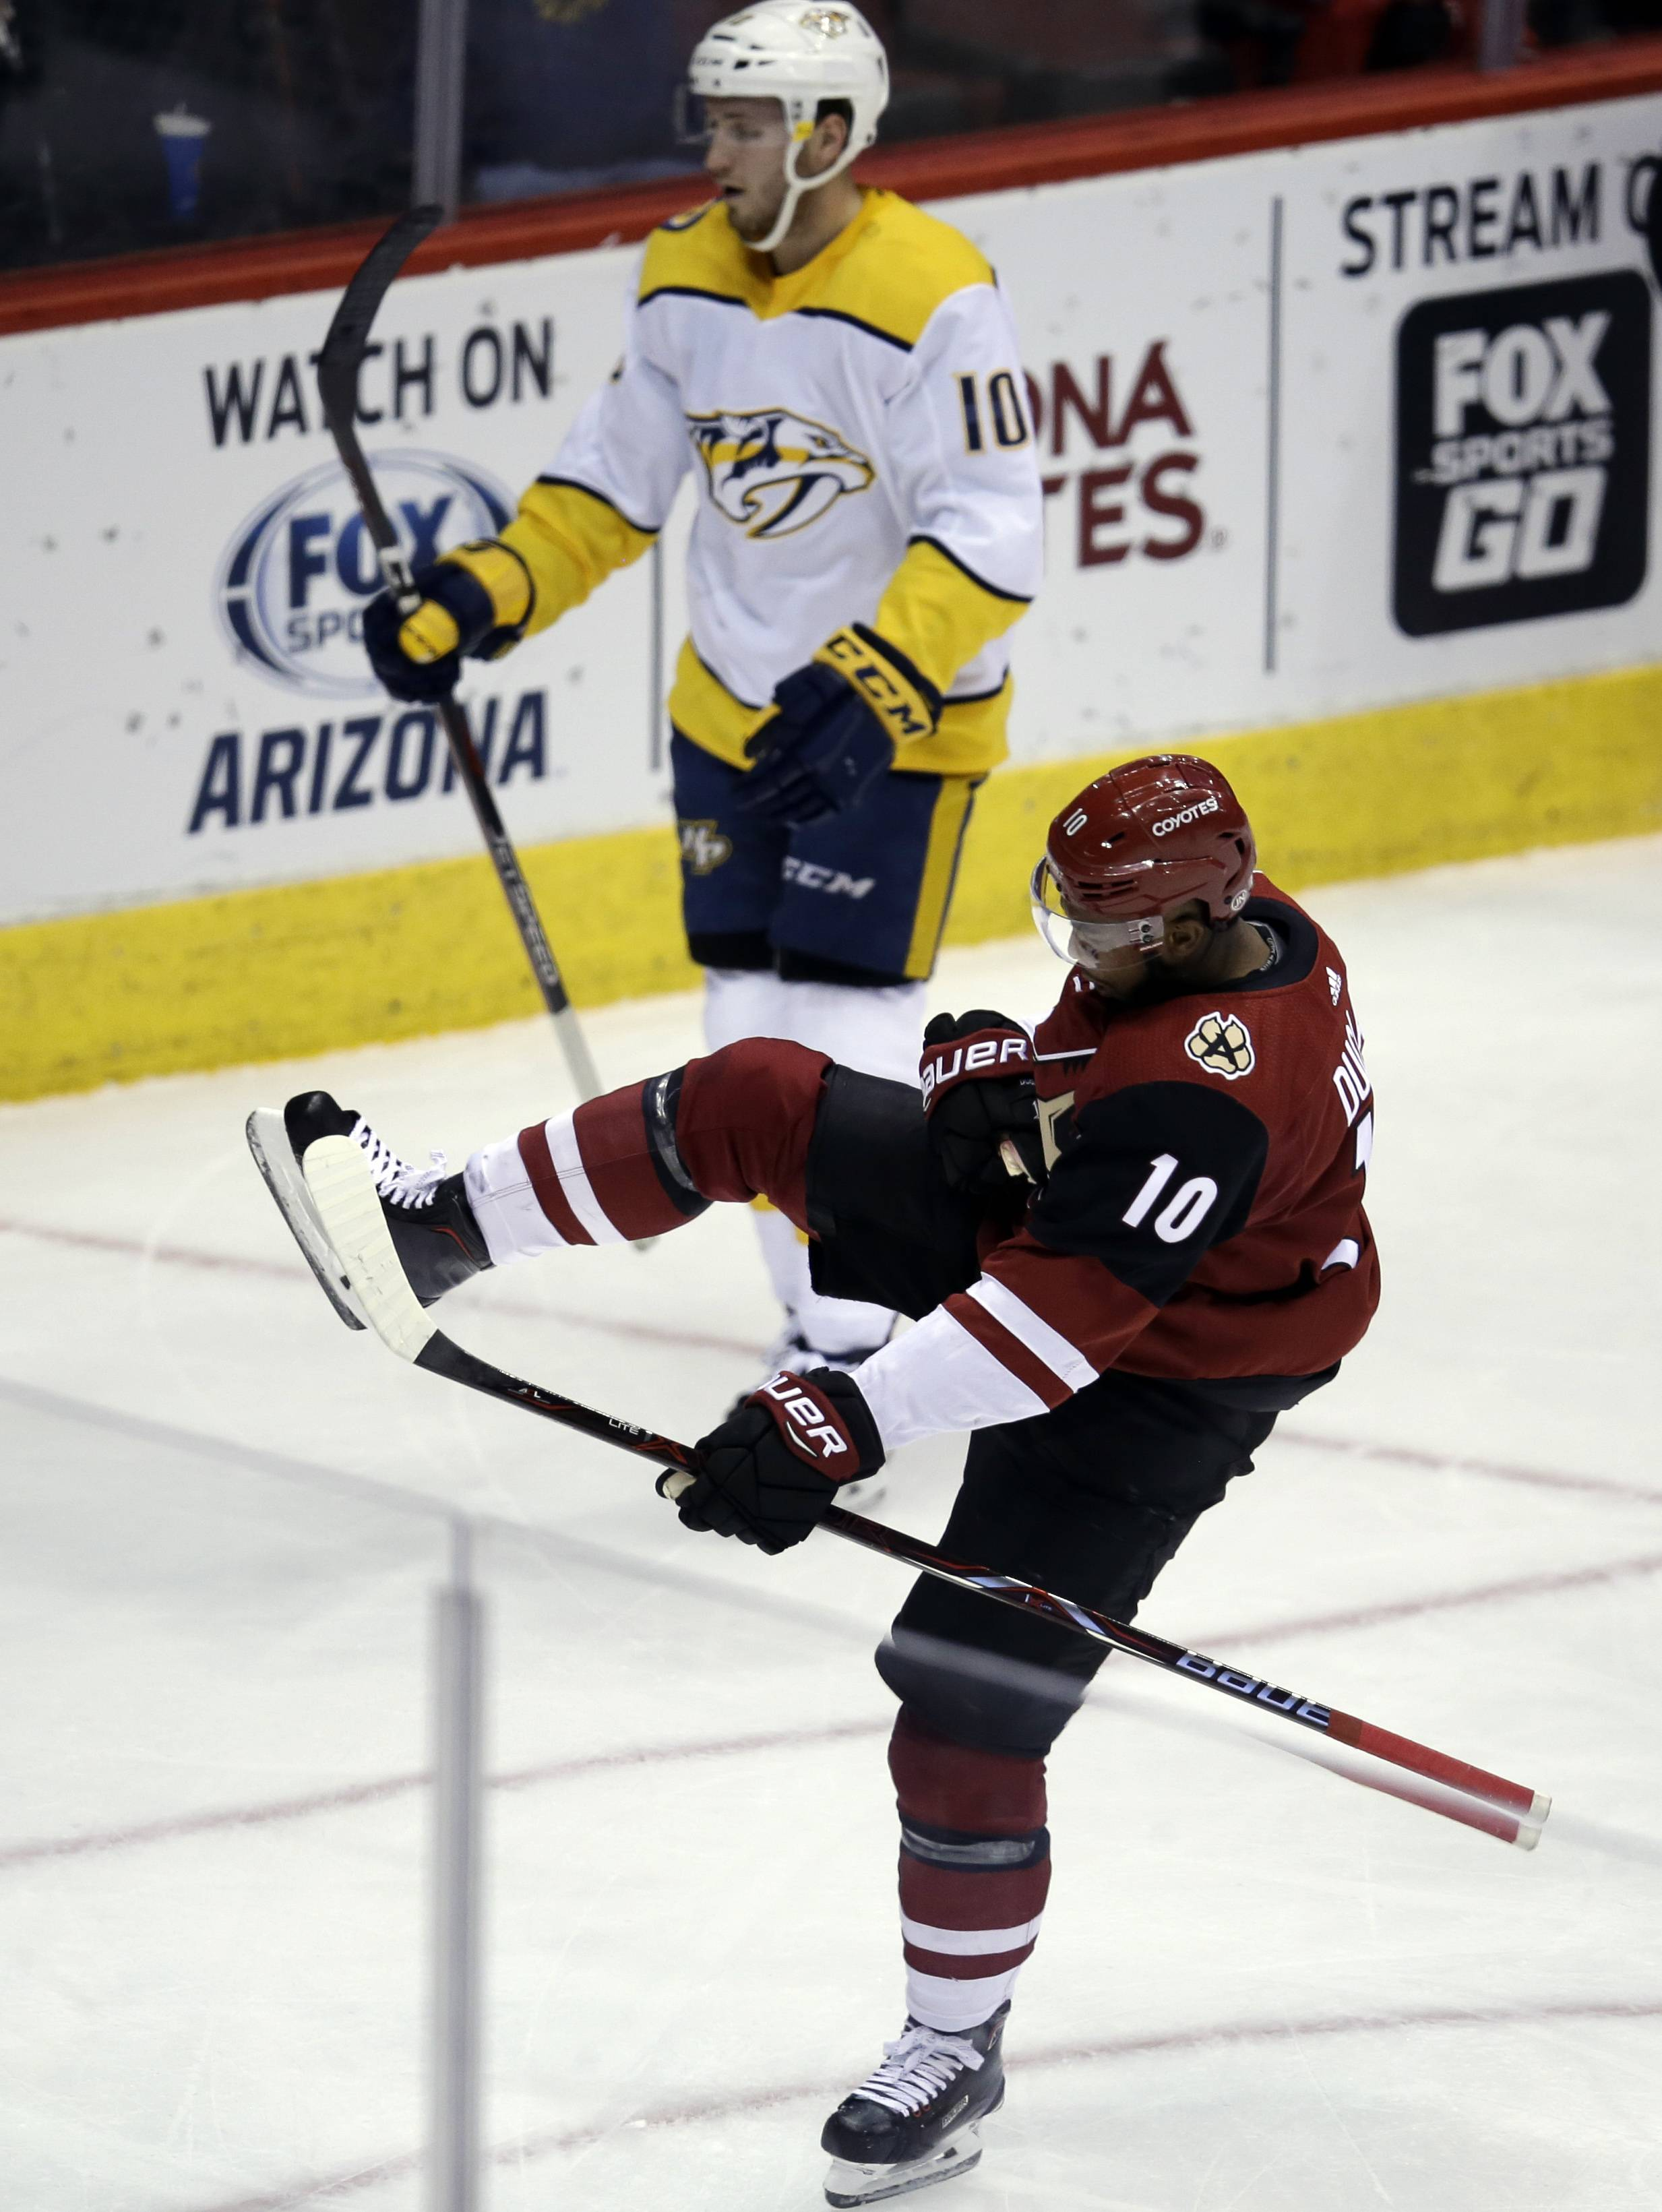 Arizona Coyotes left wing Anthony Duclair (10) celebrates after scoring a goal against the Nashville Predators during the second period during an NHL hockey game Thursday, Jan. 4, 2018, in Glendale, Ariz.